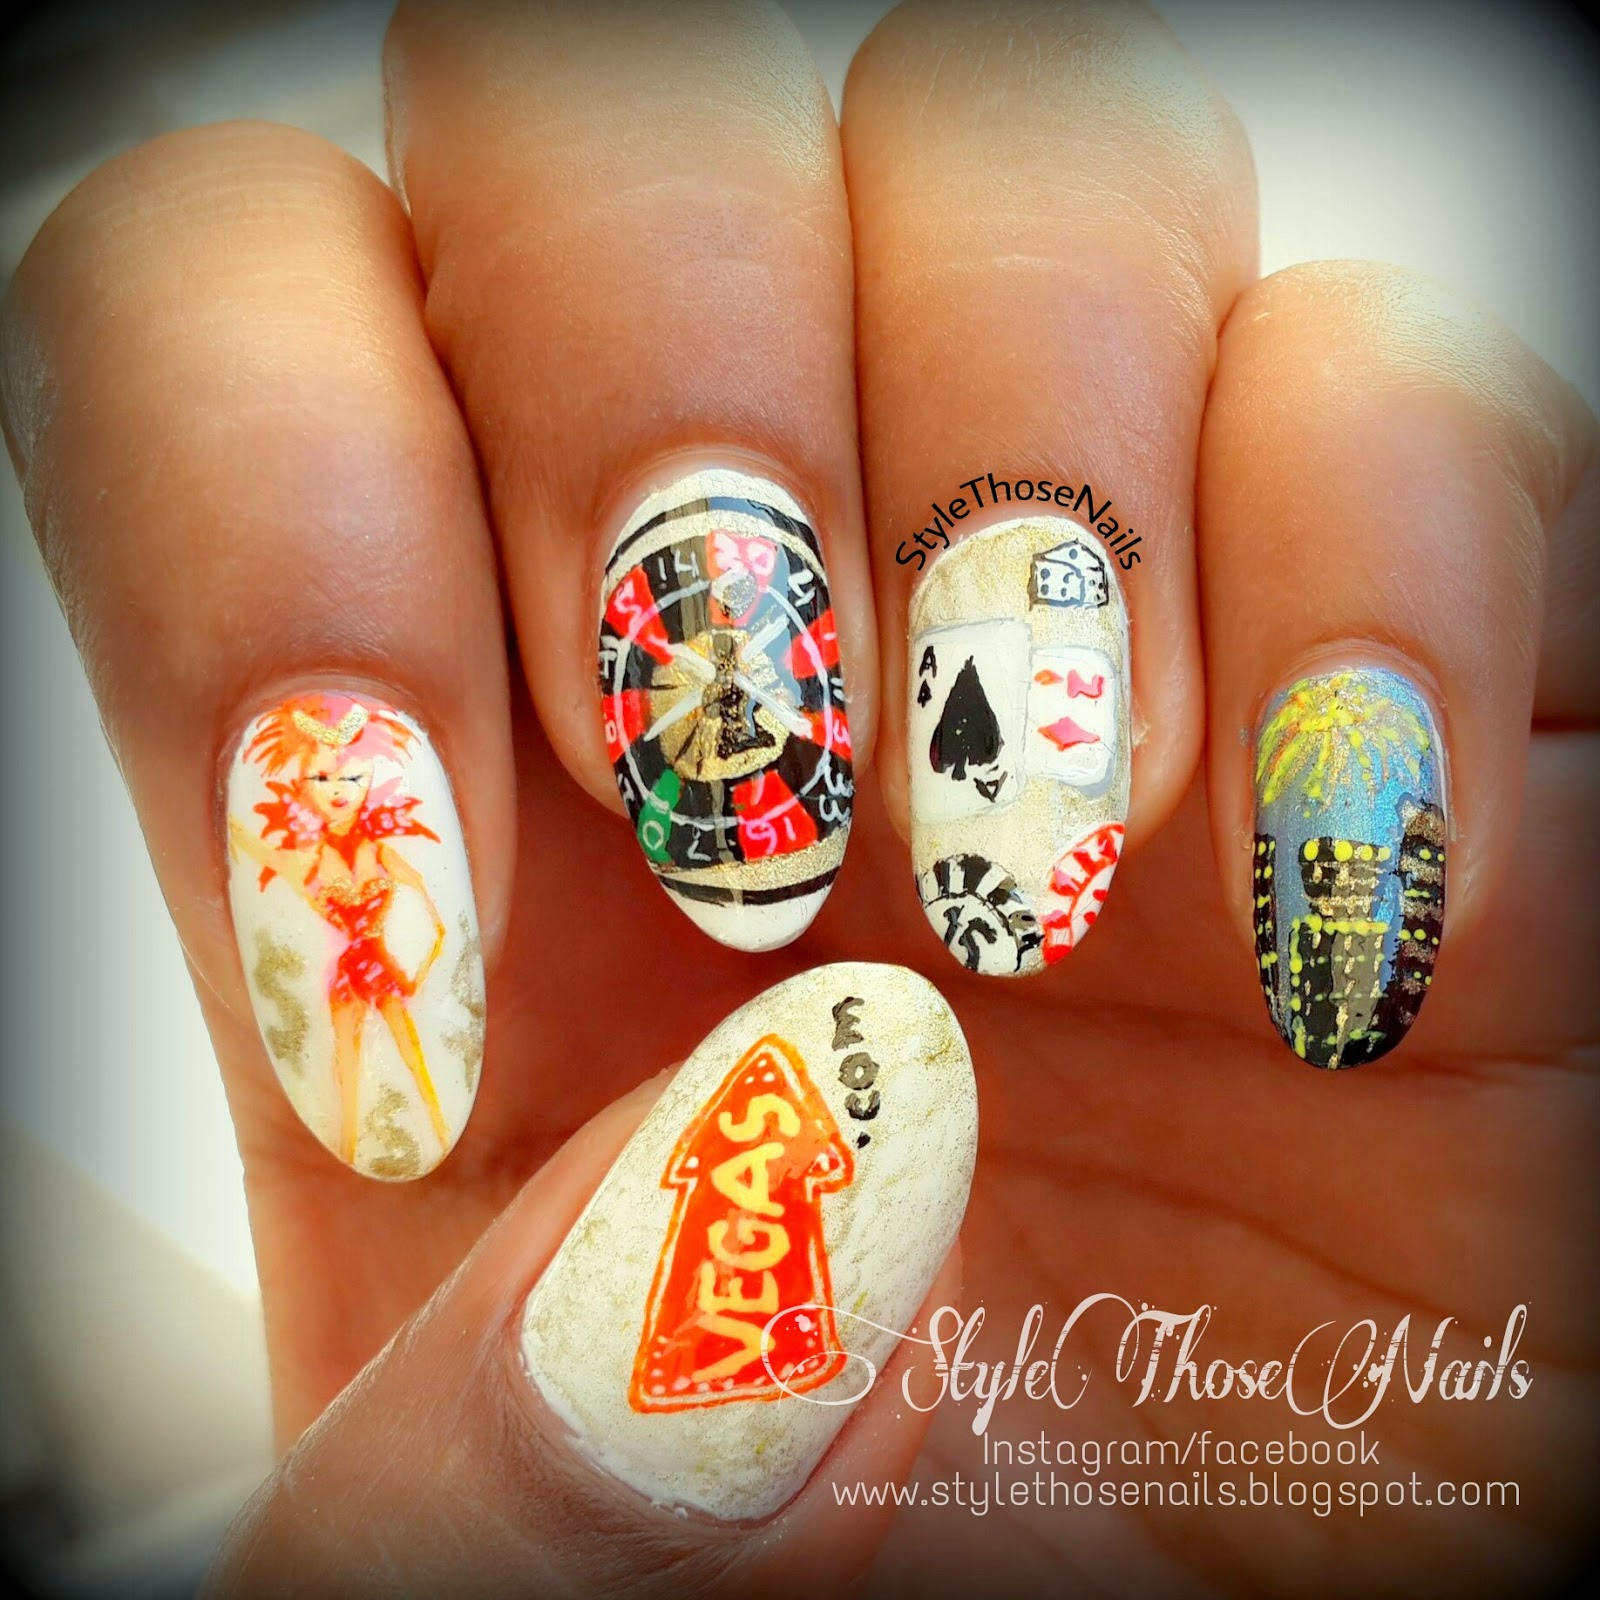 Beautiful nail art las vegas images everyday style ideas 3d nail best images about vegas party on pinterest nail art 3d nail art las vegas prinsesfo Choice Image